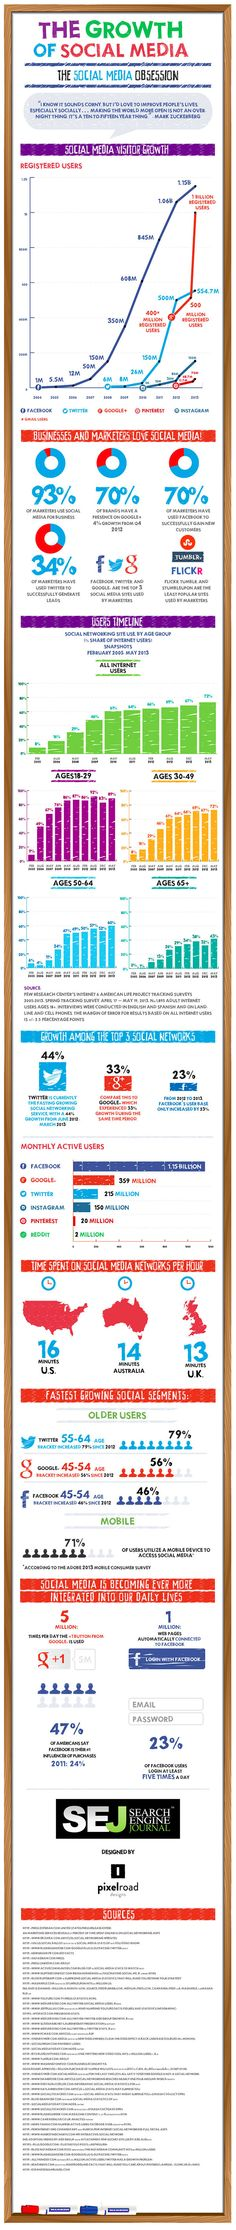 Breakdown of how social media channel performed in 2013 in terms of total visitor growth, active users, users by age groups, time spent on social networks and more. #SMM #MarketResearch